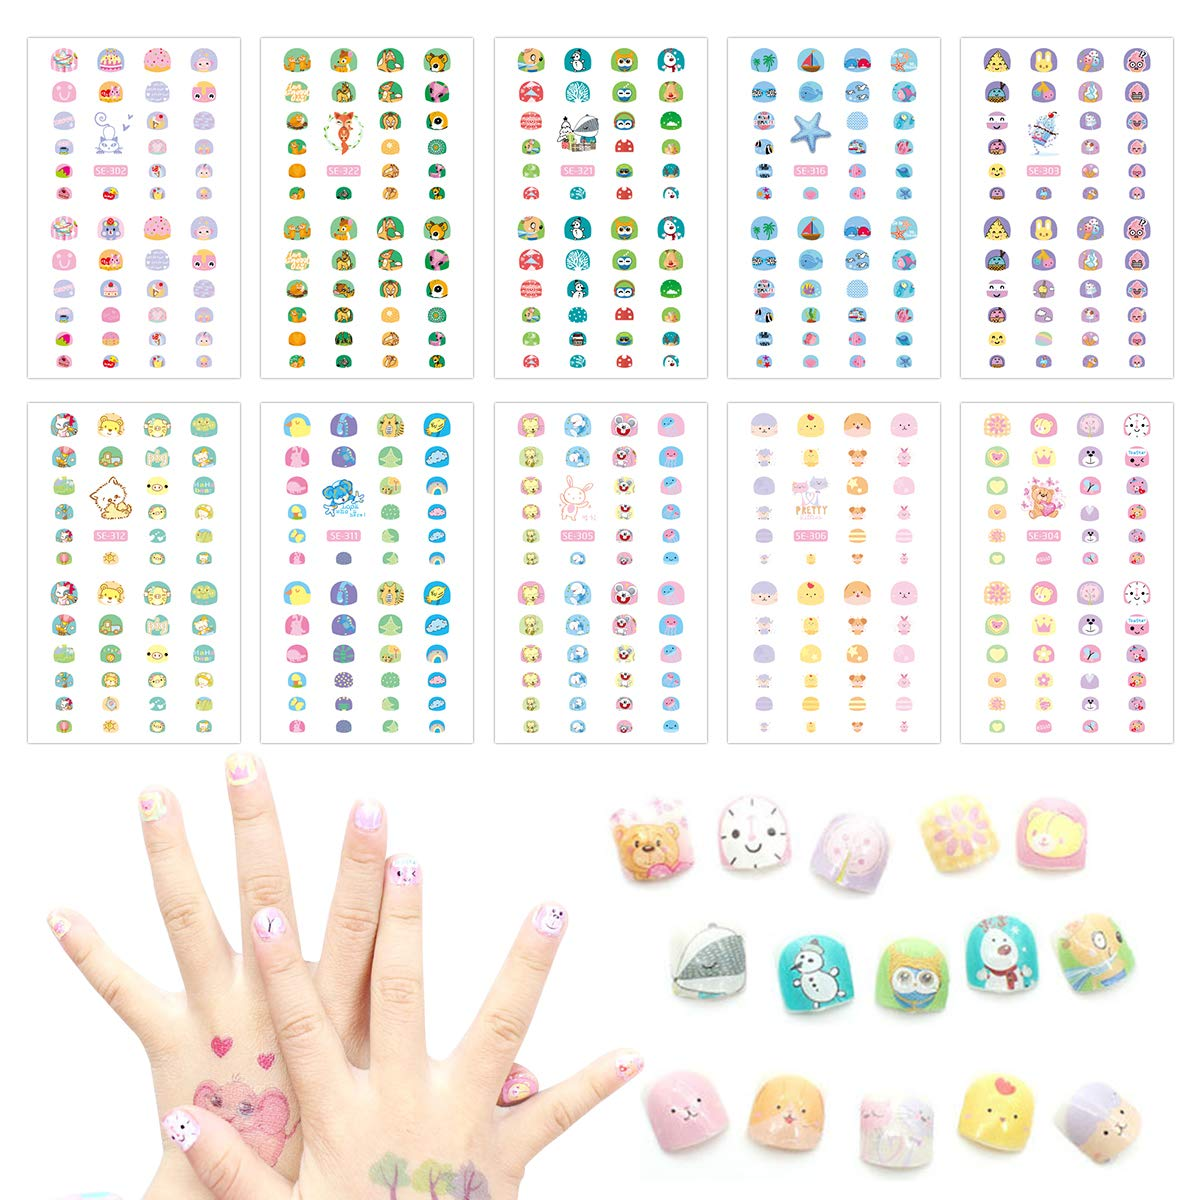 Cieovo 10 Sheet Kids Nail Stickers for Little Girl Nail Art Self-adhesive Decals Party Favor Pretend Play Princess Jewelry Decoration by CIEOVO